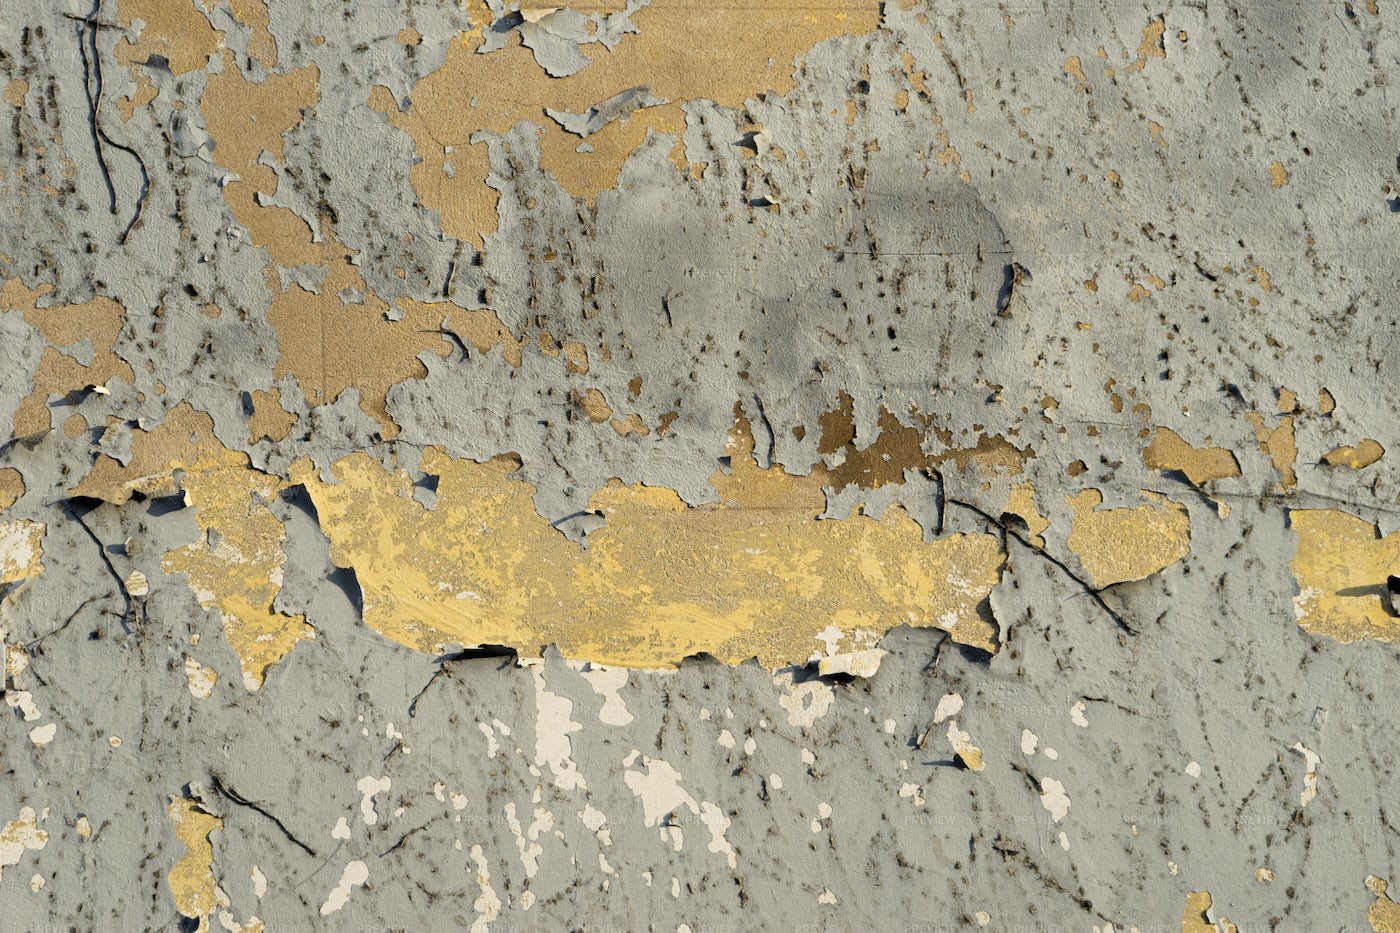 Old Paint On Wall: Stock Photos